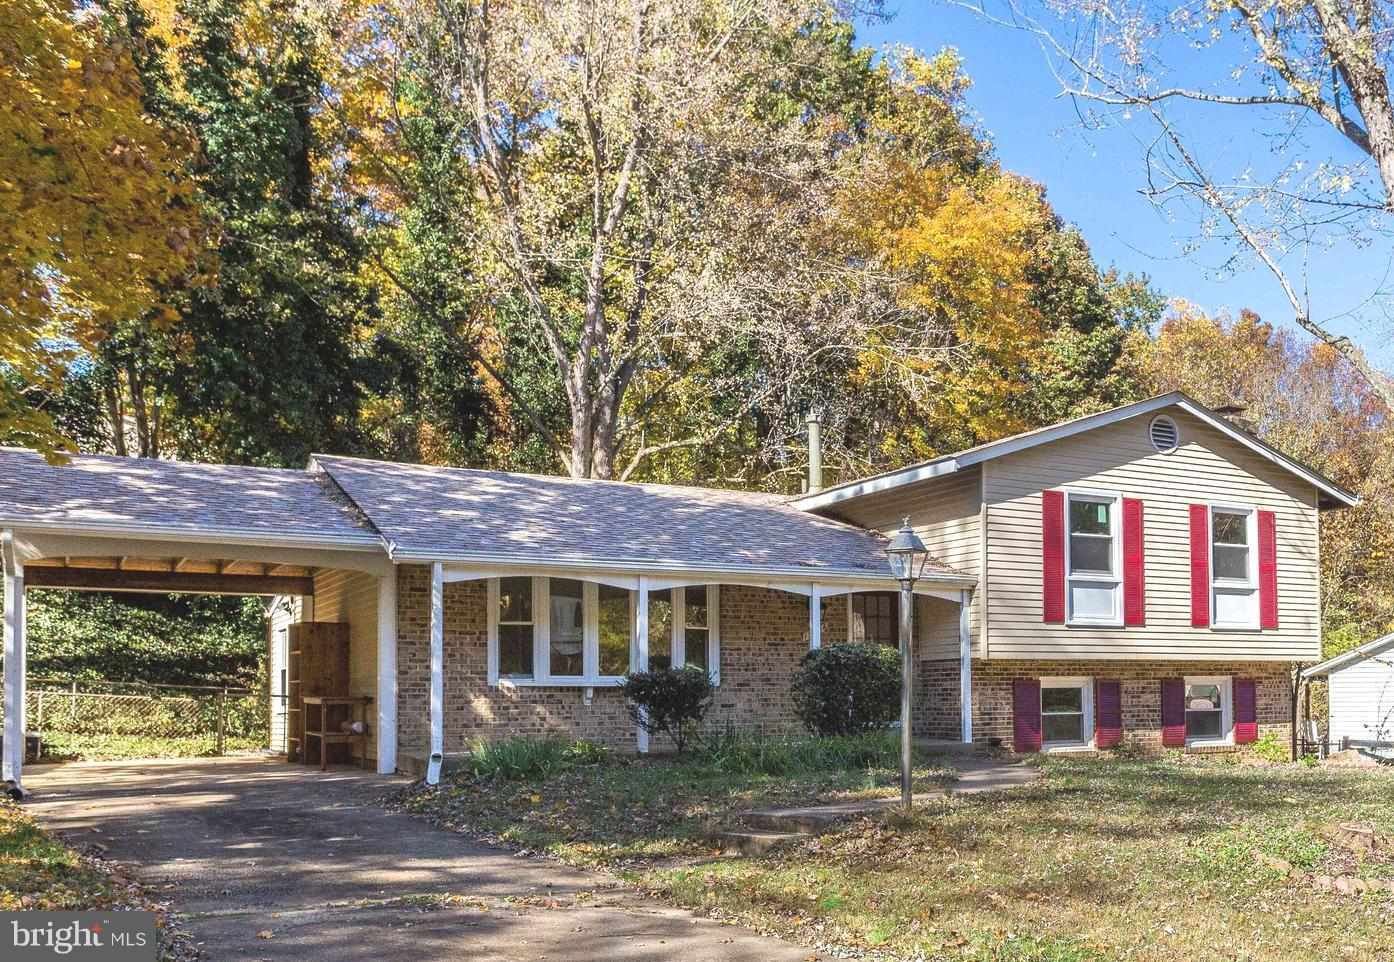 Welcome to this beautiful single family home.4BD/2.5BA, updated kitchen, brand new S/S appliances, family room w/wood burning fireplace & brick hearth. New flooring throughout, Roof replaced 2016. Newer windows & HVAC syst, fenced rear yard, fresh paint. Minutes to I-95, commuter lot, VRE, shopping, schools, recreation & pool. Convenient to Quantico, Ft Belvoir & DC. NO HOA.